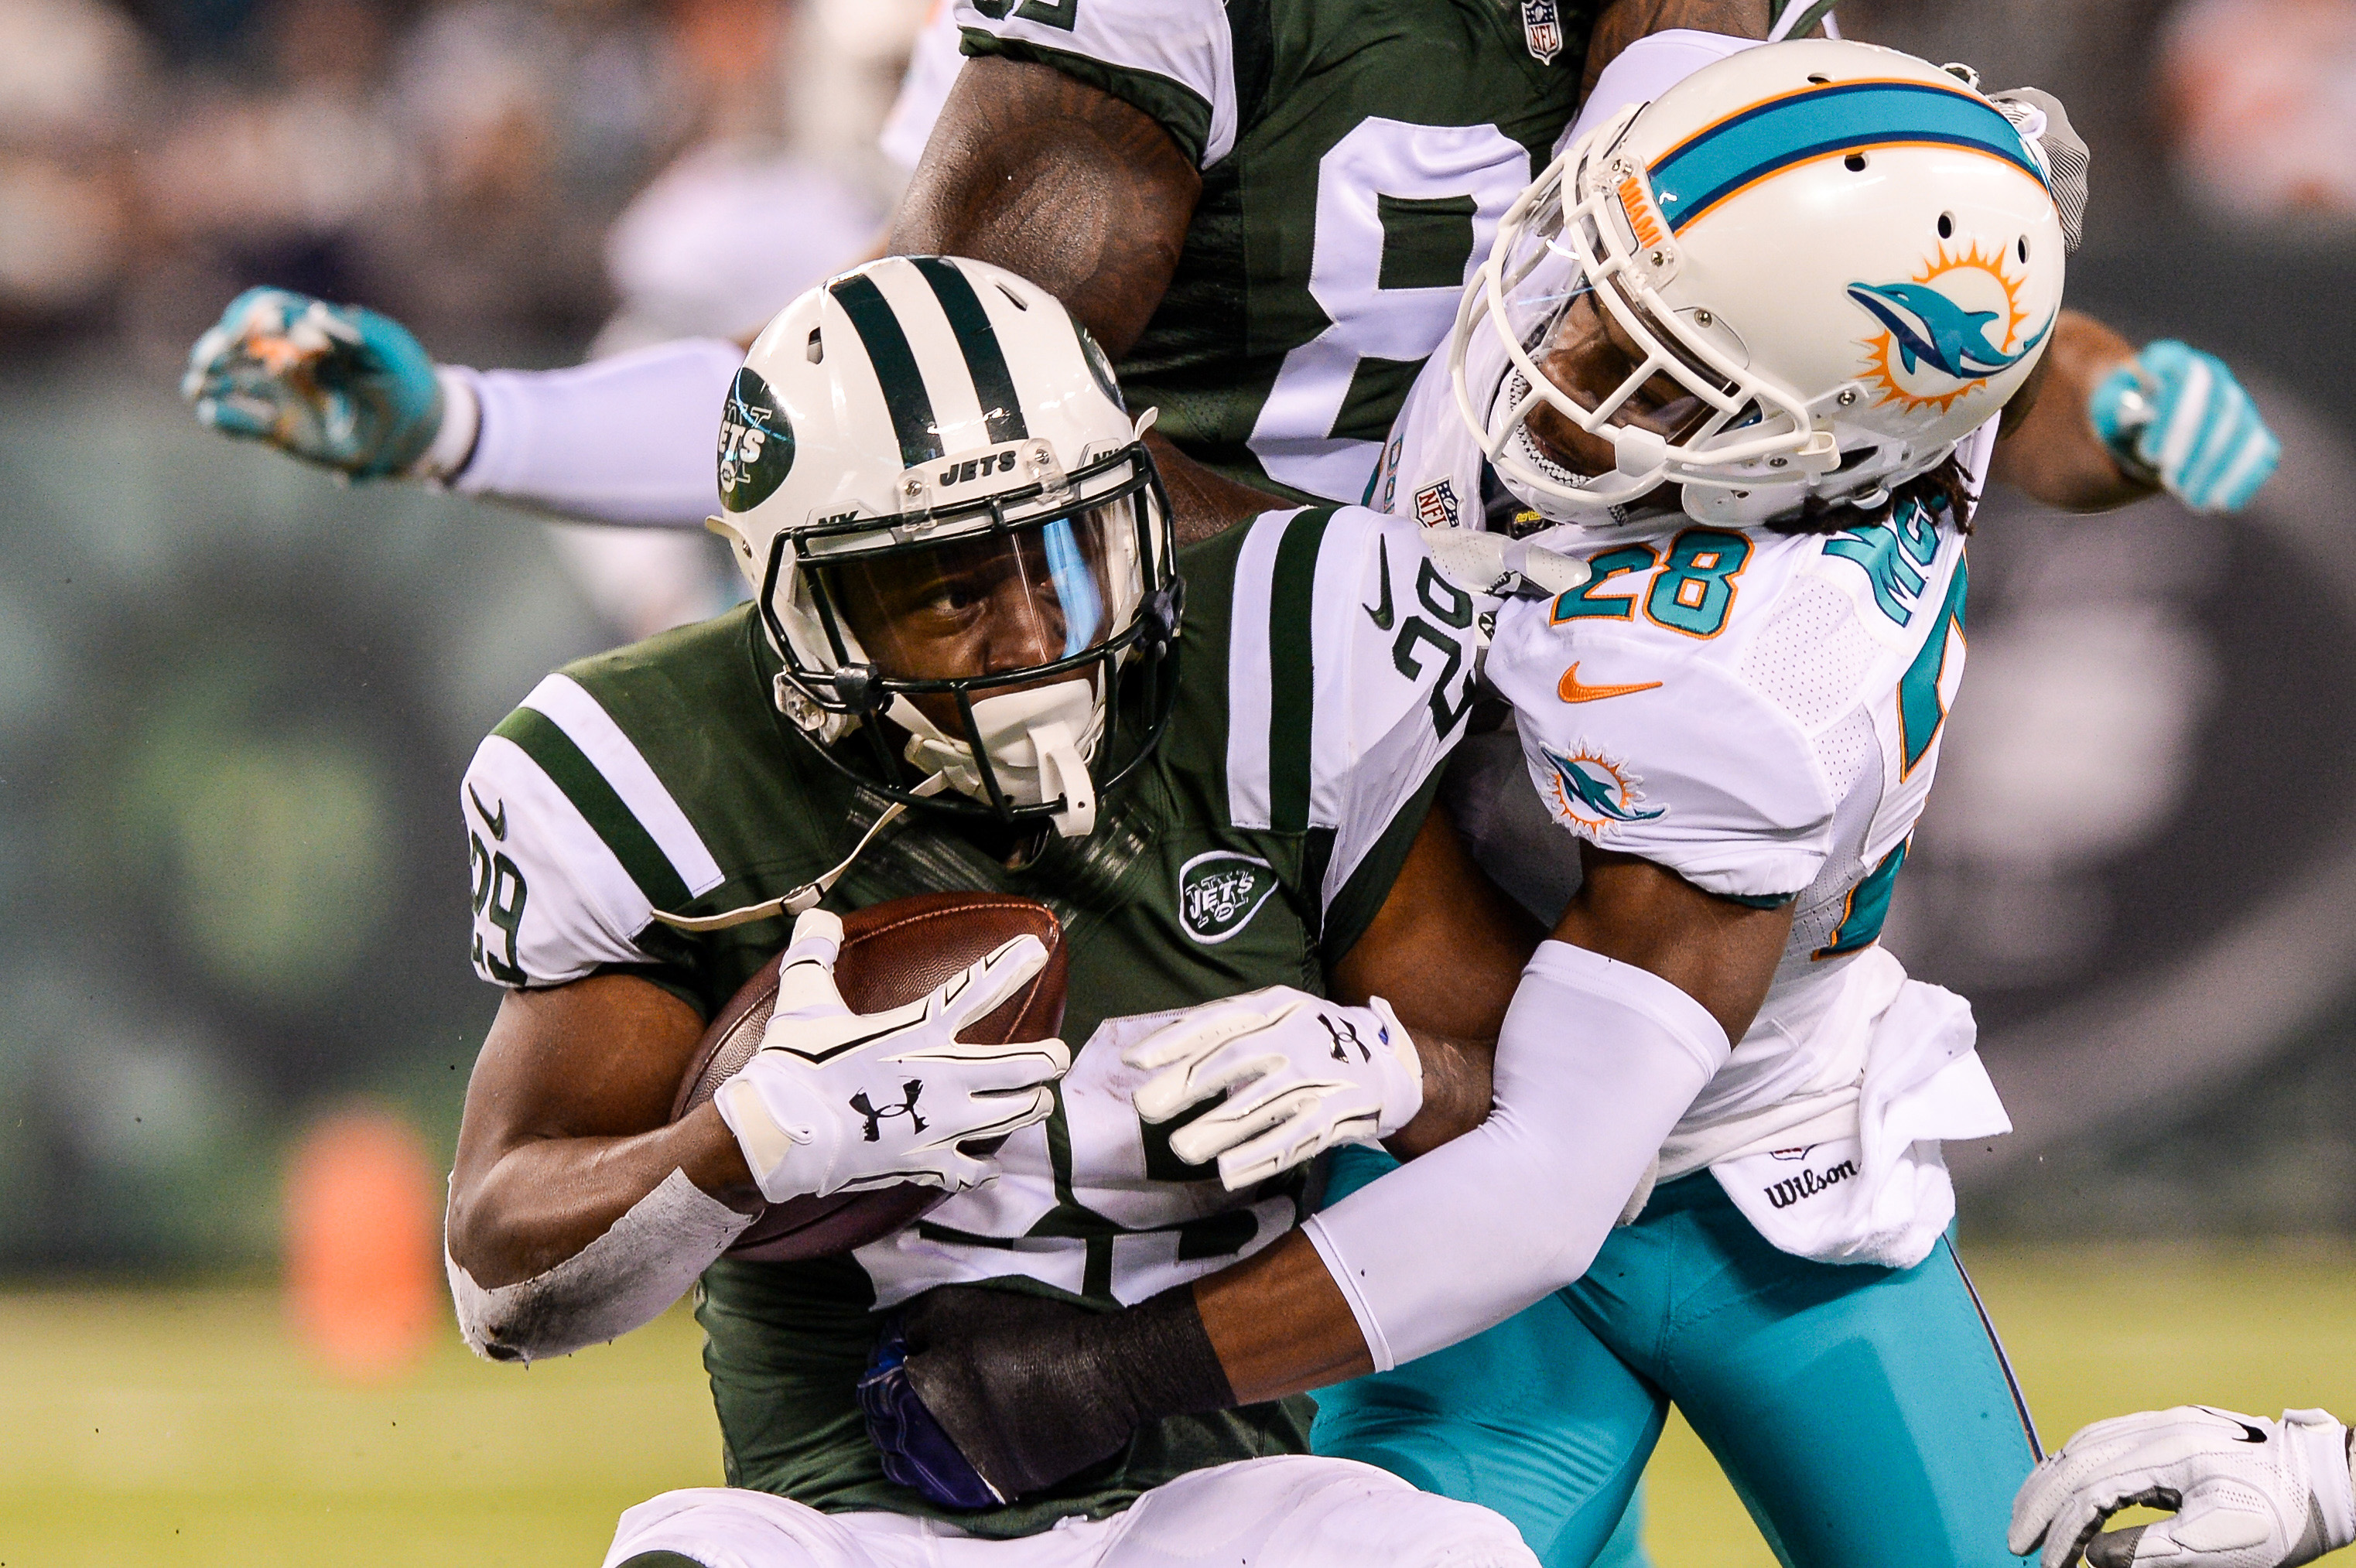 Jets dolphins betting poker strategy limit holdem betting